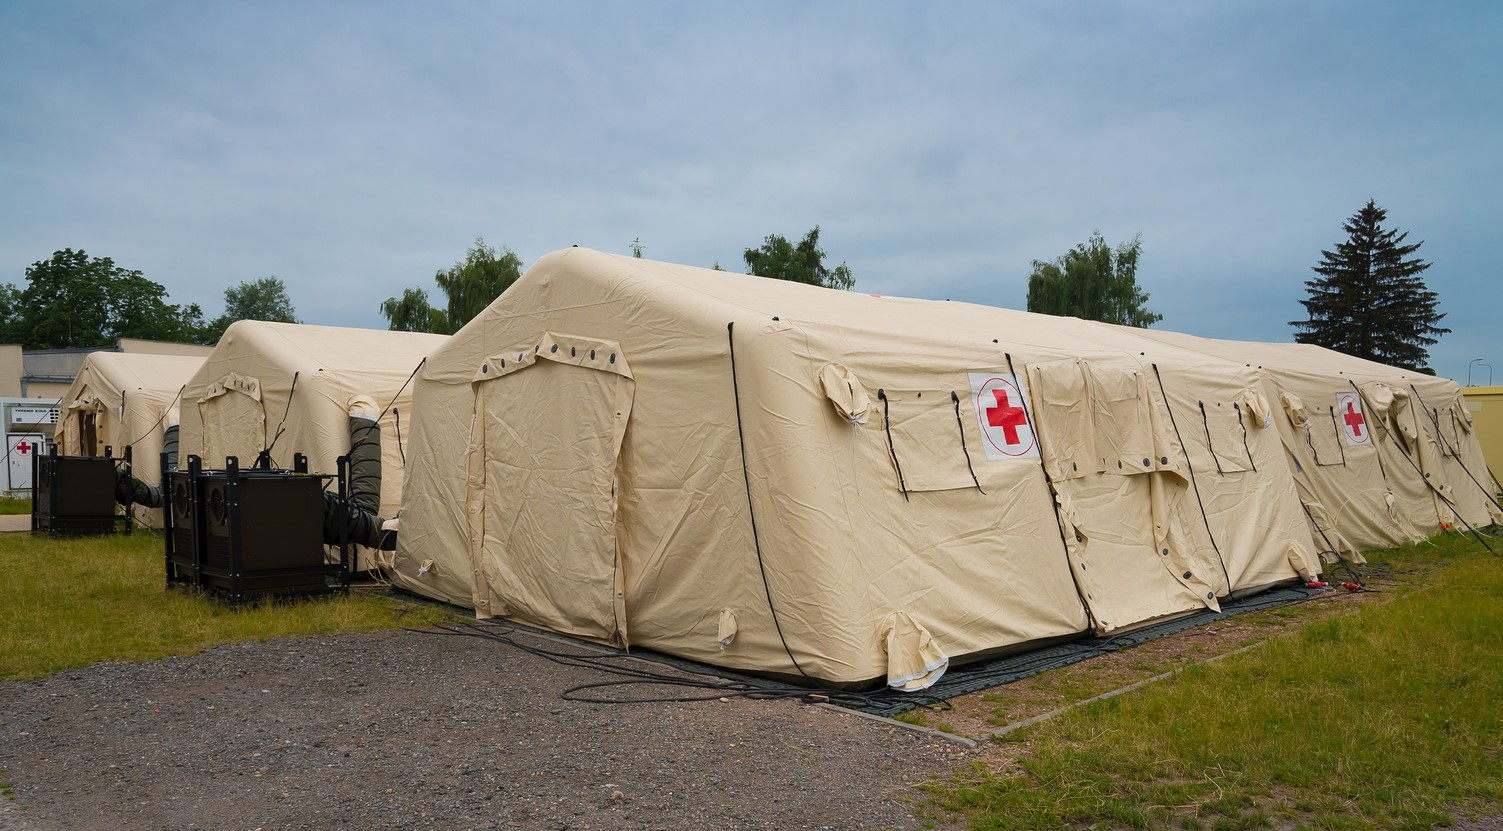 Packaging of Field Hospital Tents & Equipments